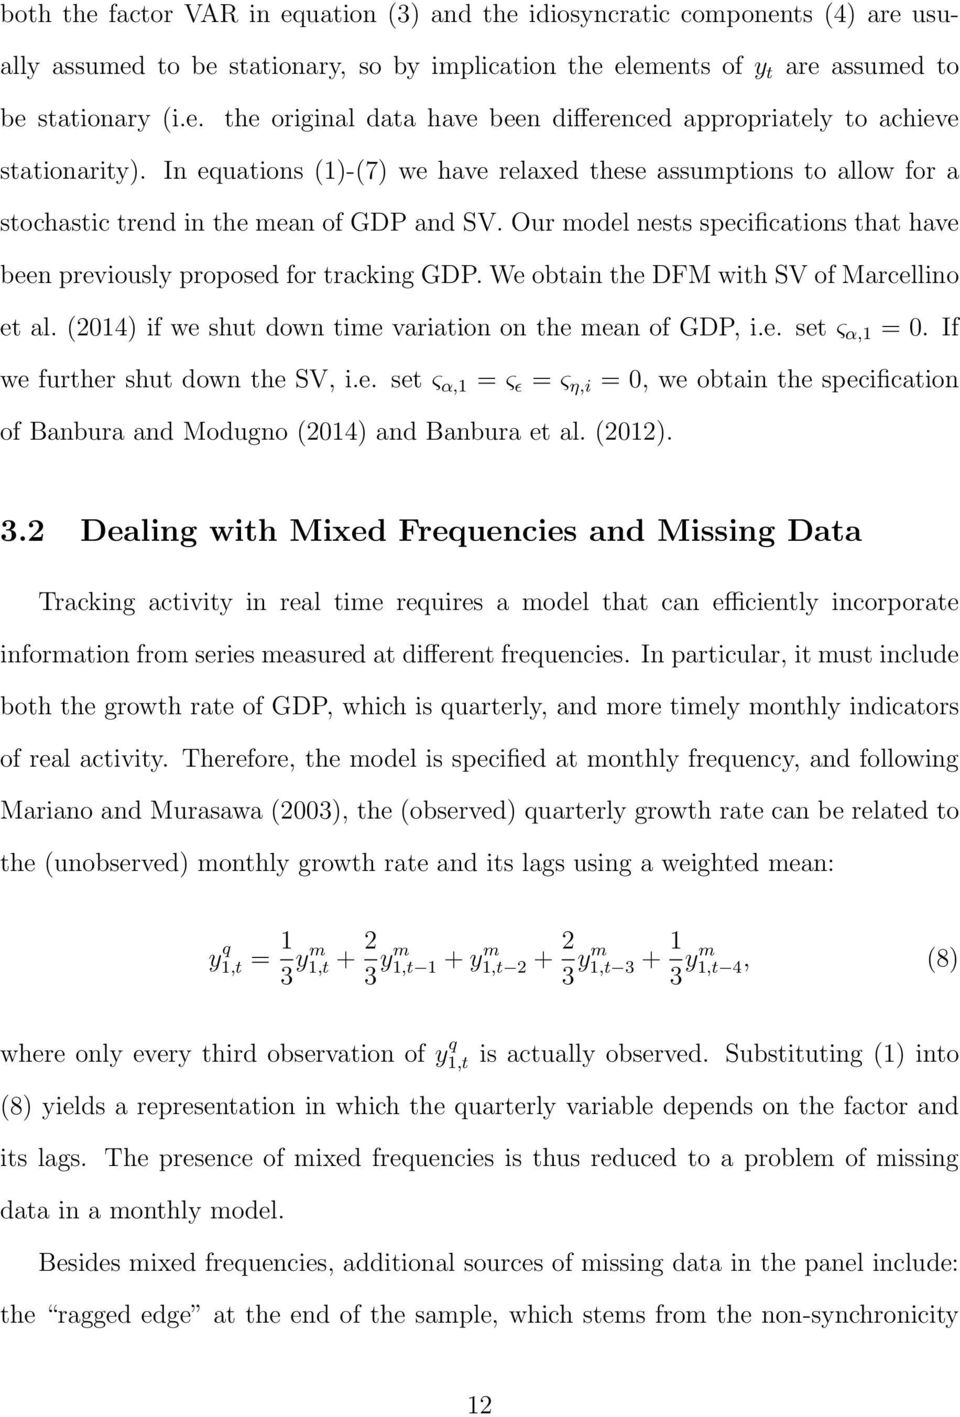 We obtain the DFM with SV of Marcellino et al. (2014) if we shut down time variation on the mean of GDP, i.e. set ς α,1 = 0. If we further shut down the SV, i.e. set ς α,1 = ς ɛ = ς η,i = 0, we obtain the specification of Banbura and Modugno (2014) and Banbura et al.